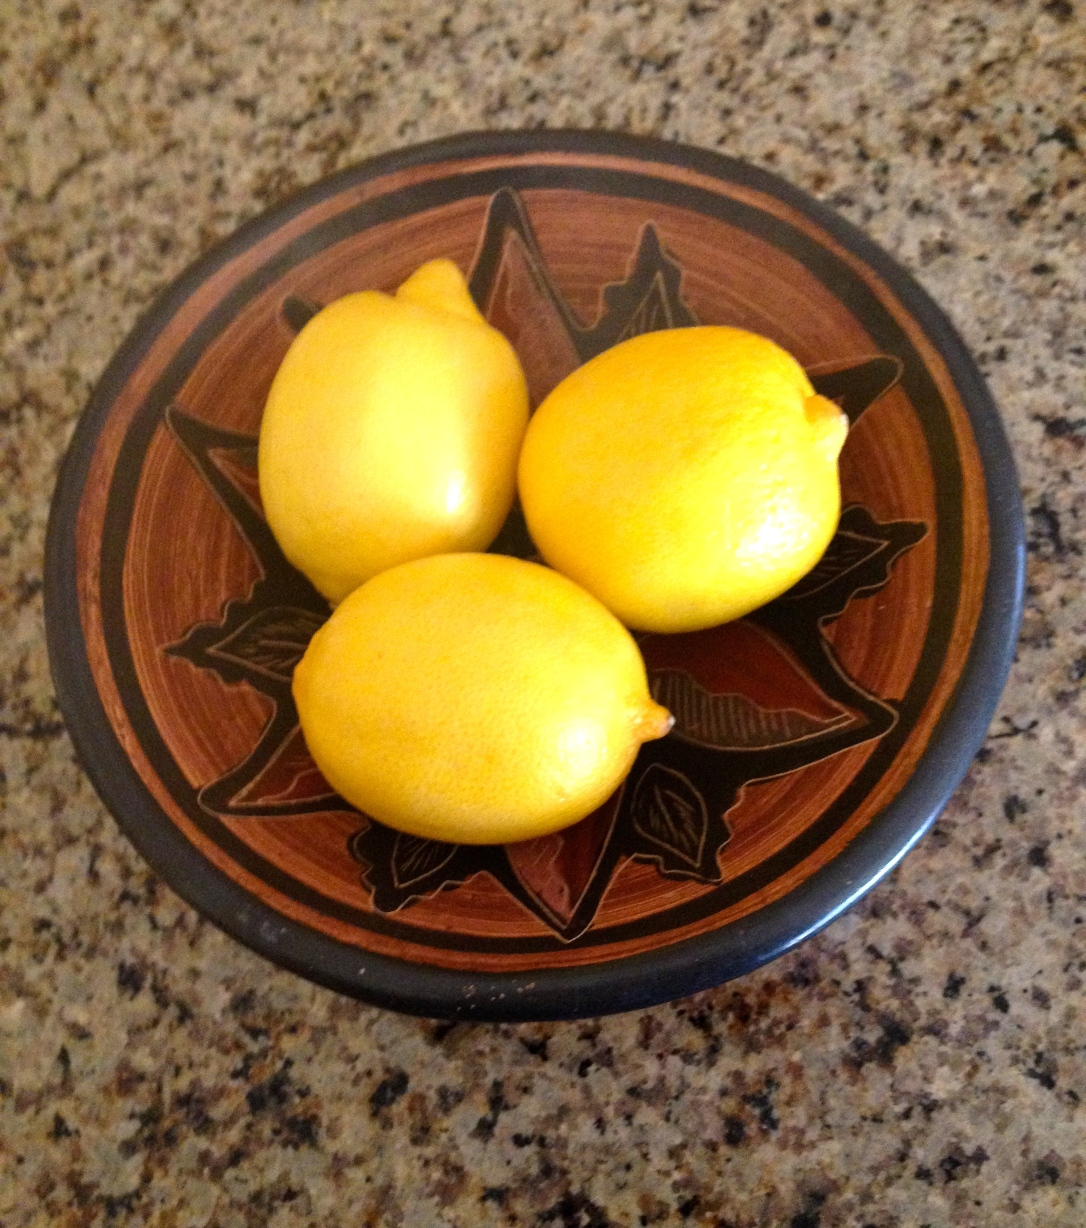 The last lemons from my tree-alvaradofrazier.com